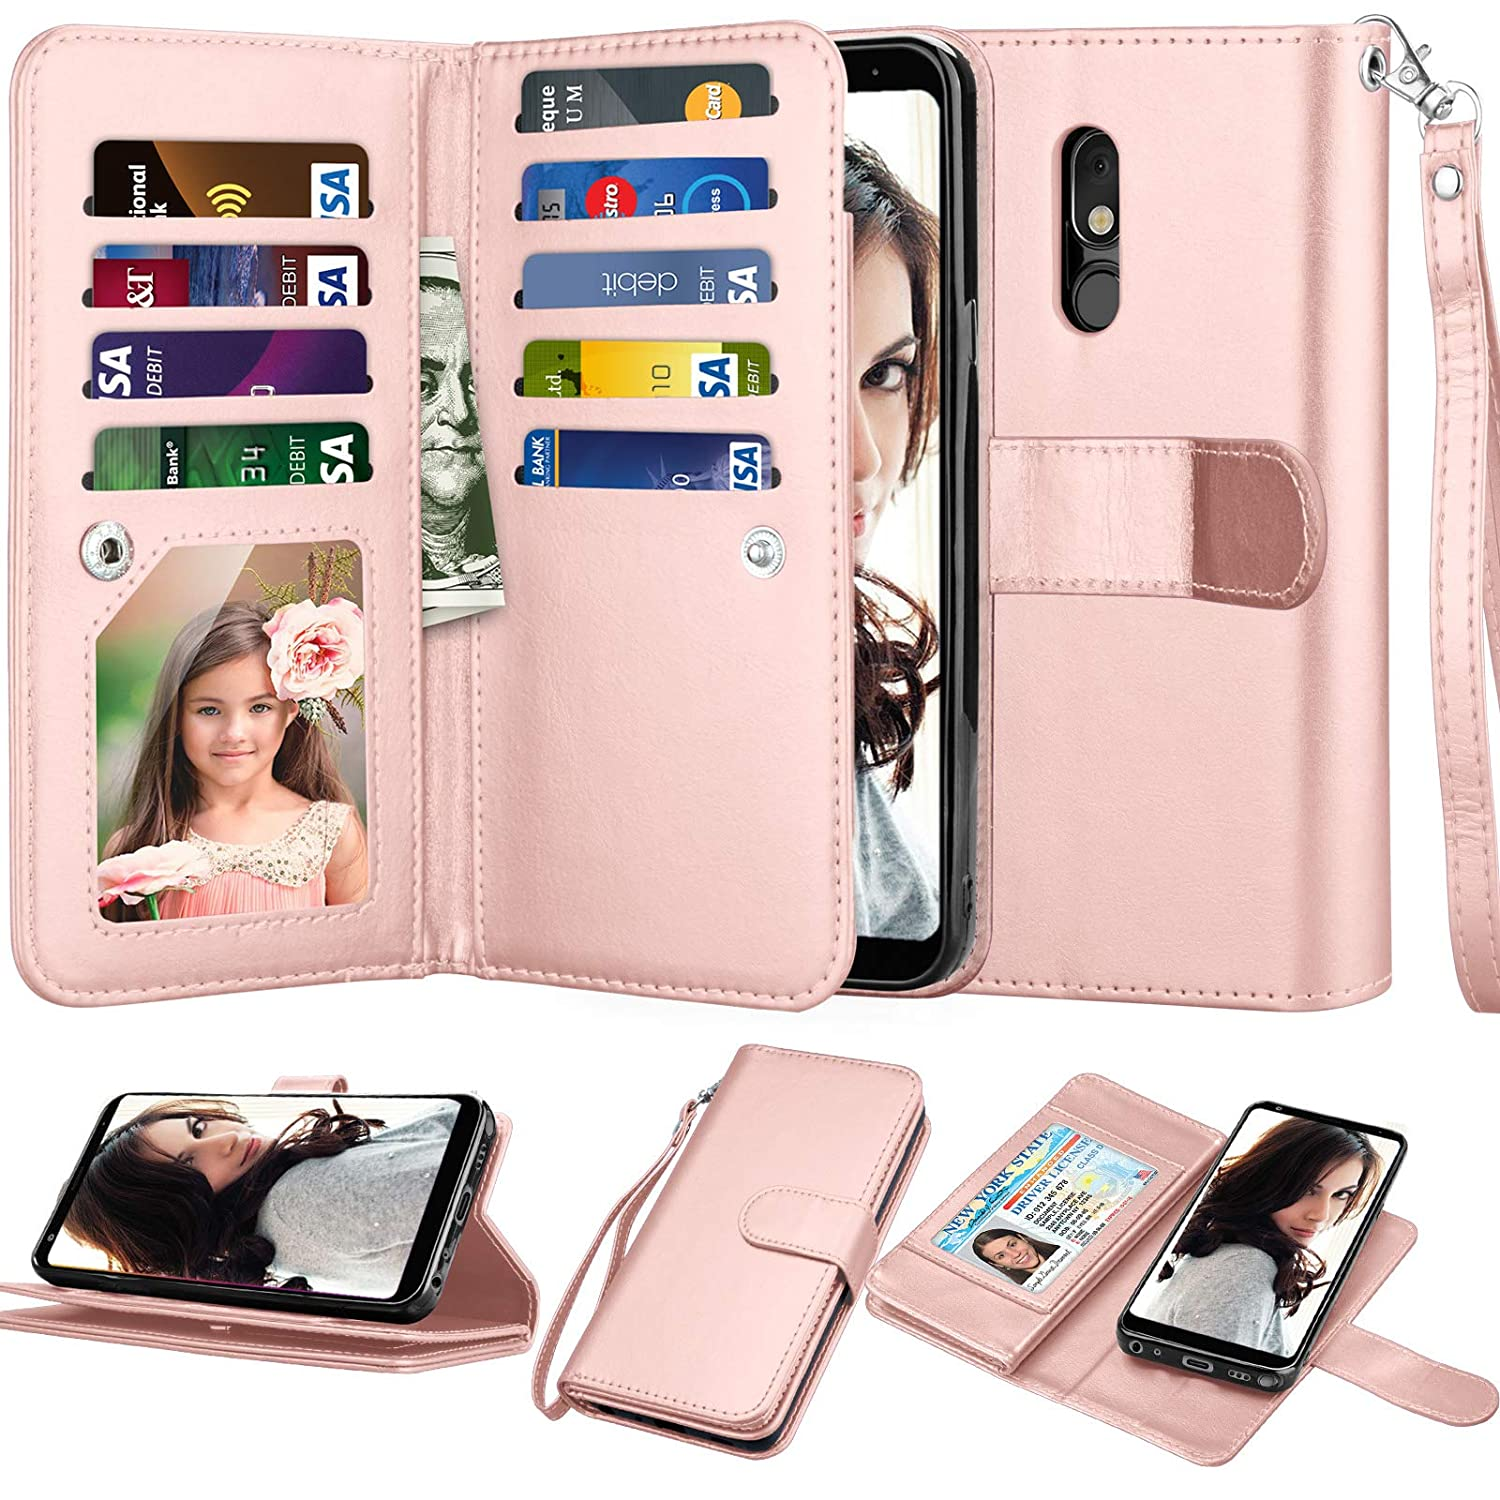 "LG Stylo 5 Wallet Case, 6.2"" LG Stylo 5 Case, Njjex [9 Card Slots] PU Leather ID Credit Holder Folio Flip [Detachable][Kickstand] Magnetic Phone Cover & Lanyard for LG Stylo 5 (2019) [Rose Gold]"